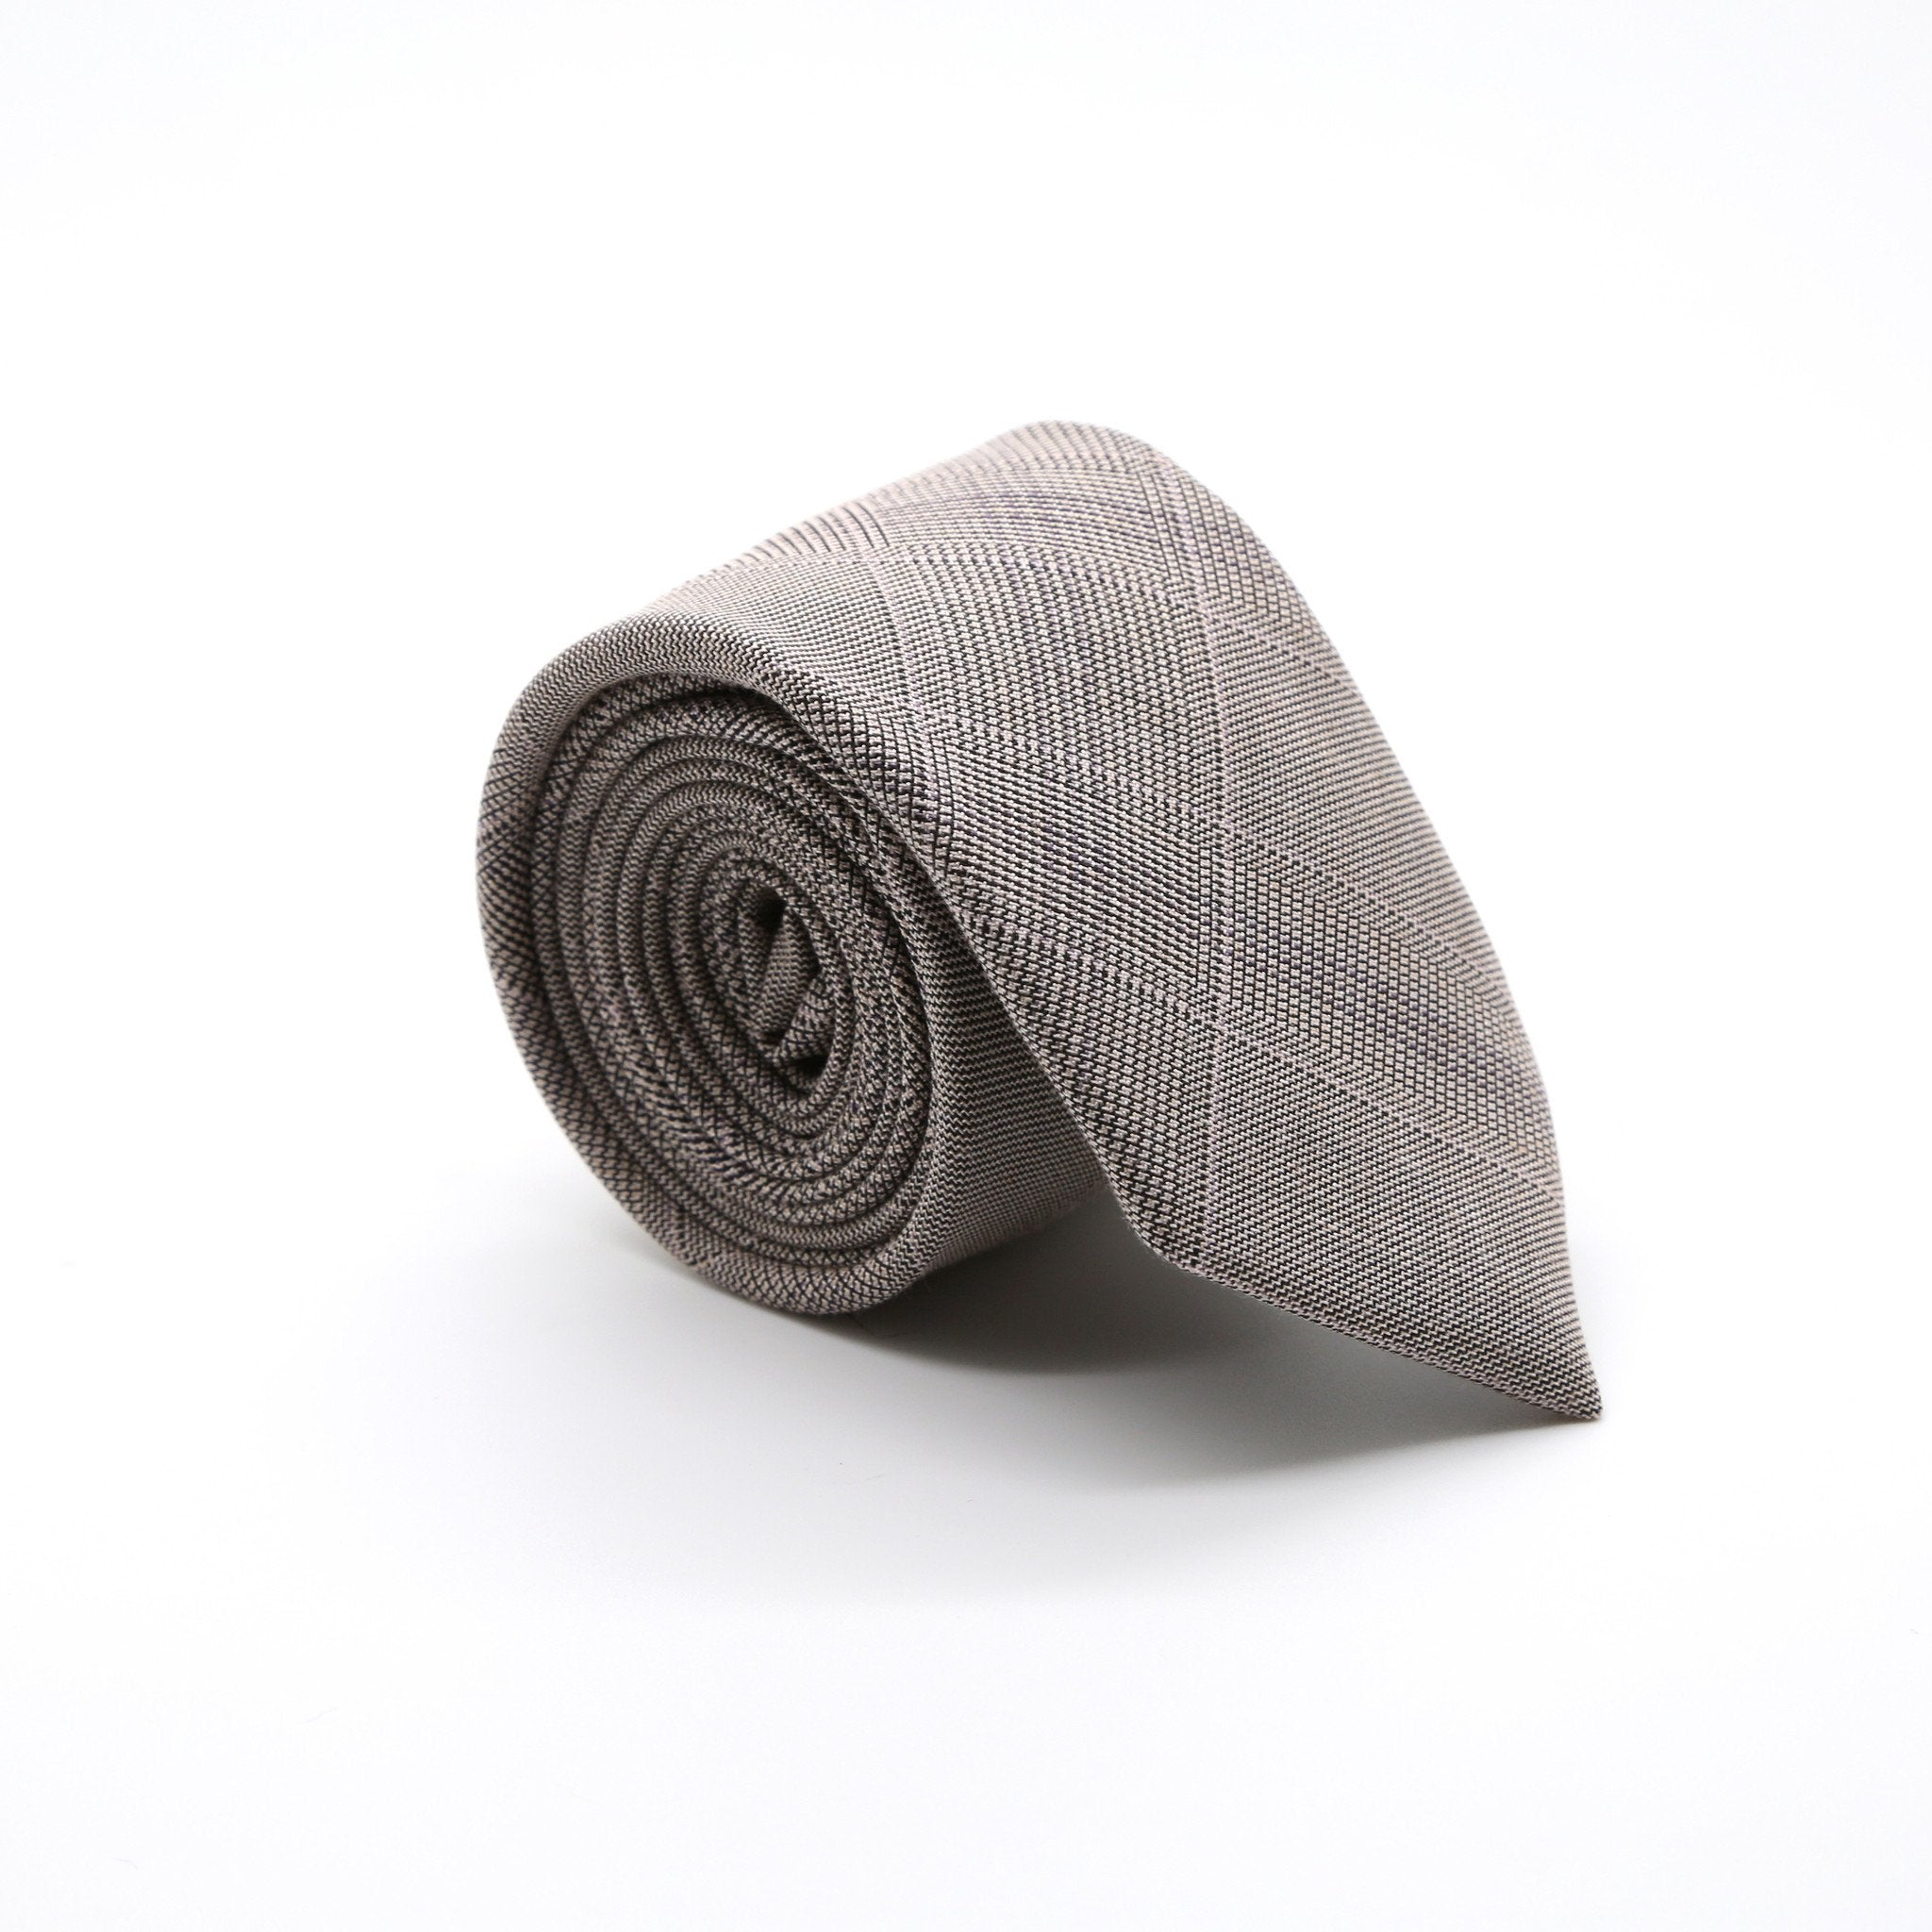 Slim Beige and Charcoal With Hint Of Lavender Plaid Neckties & Handkerchief - Giorgio's Menswear